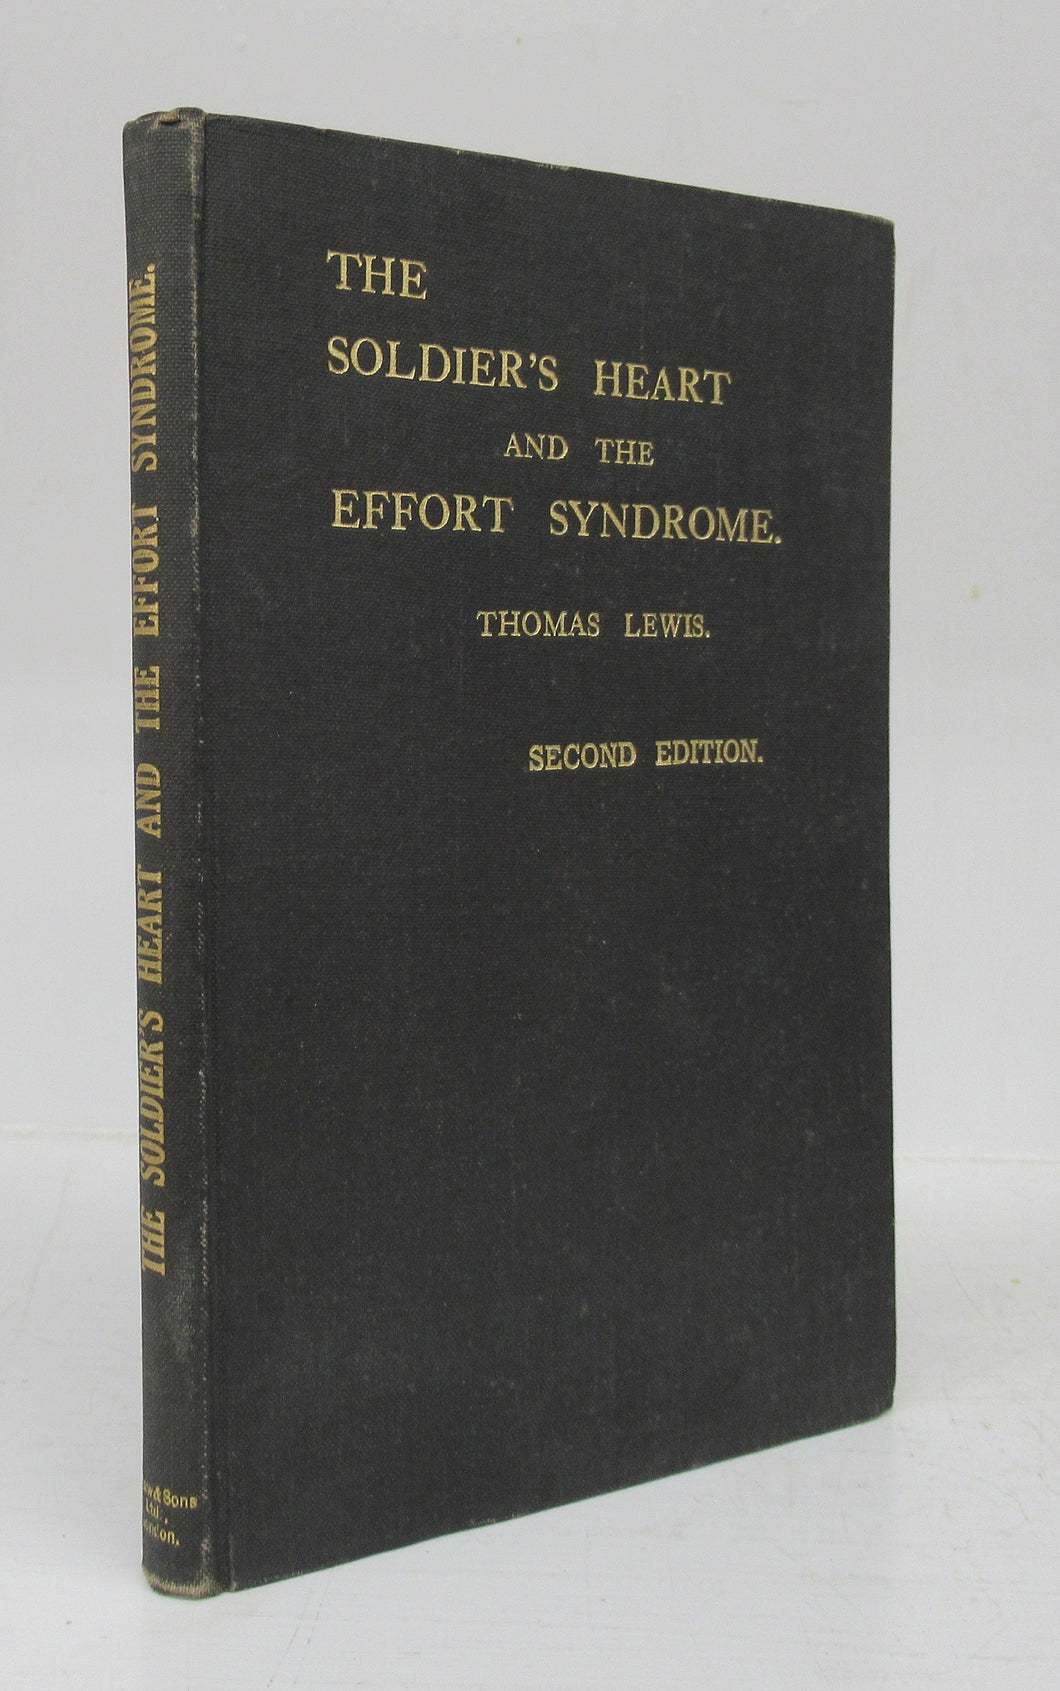 The Soldier's Heart and the Effort Syndrome